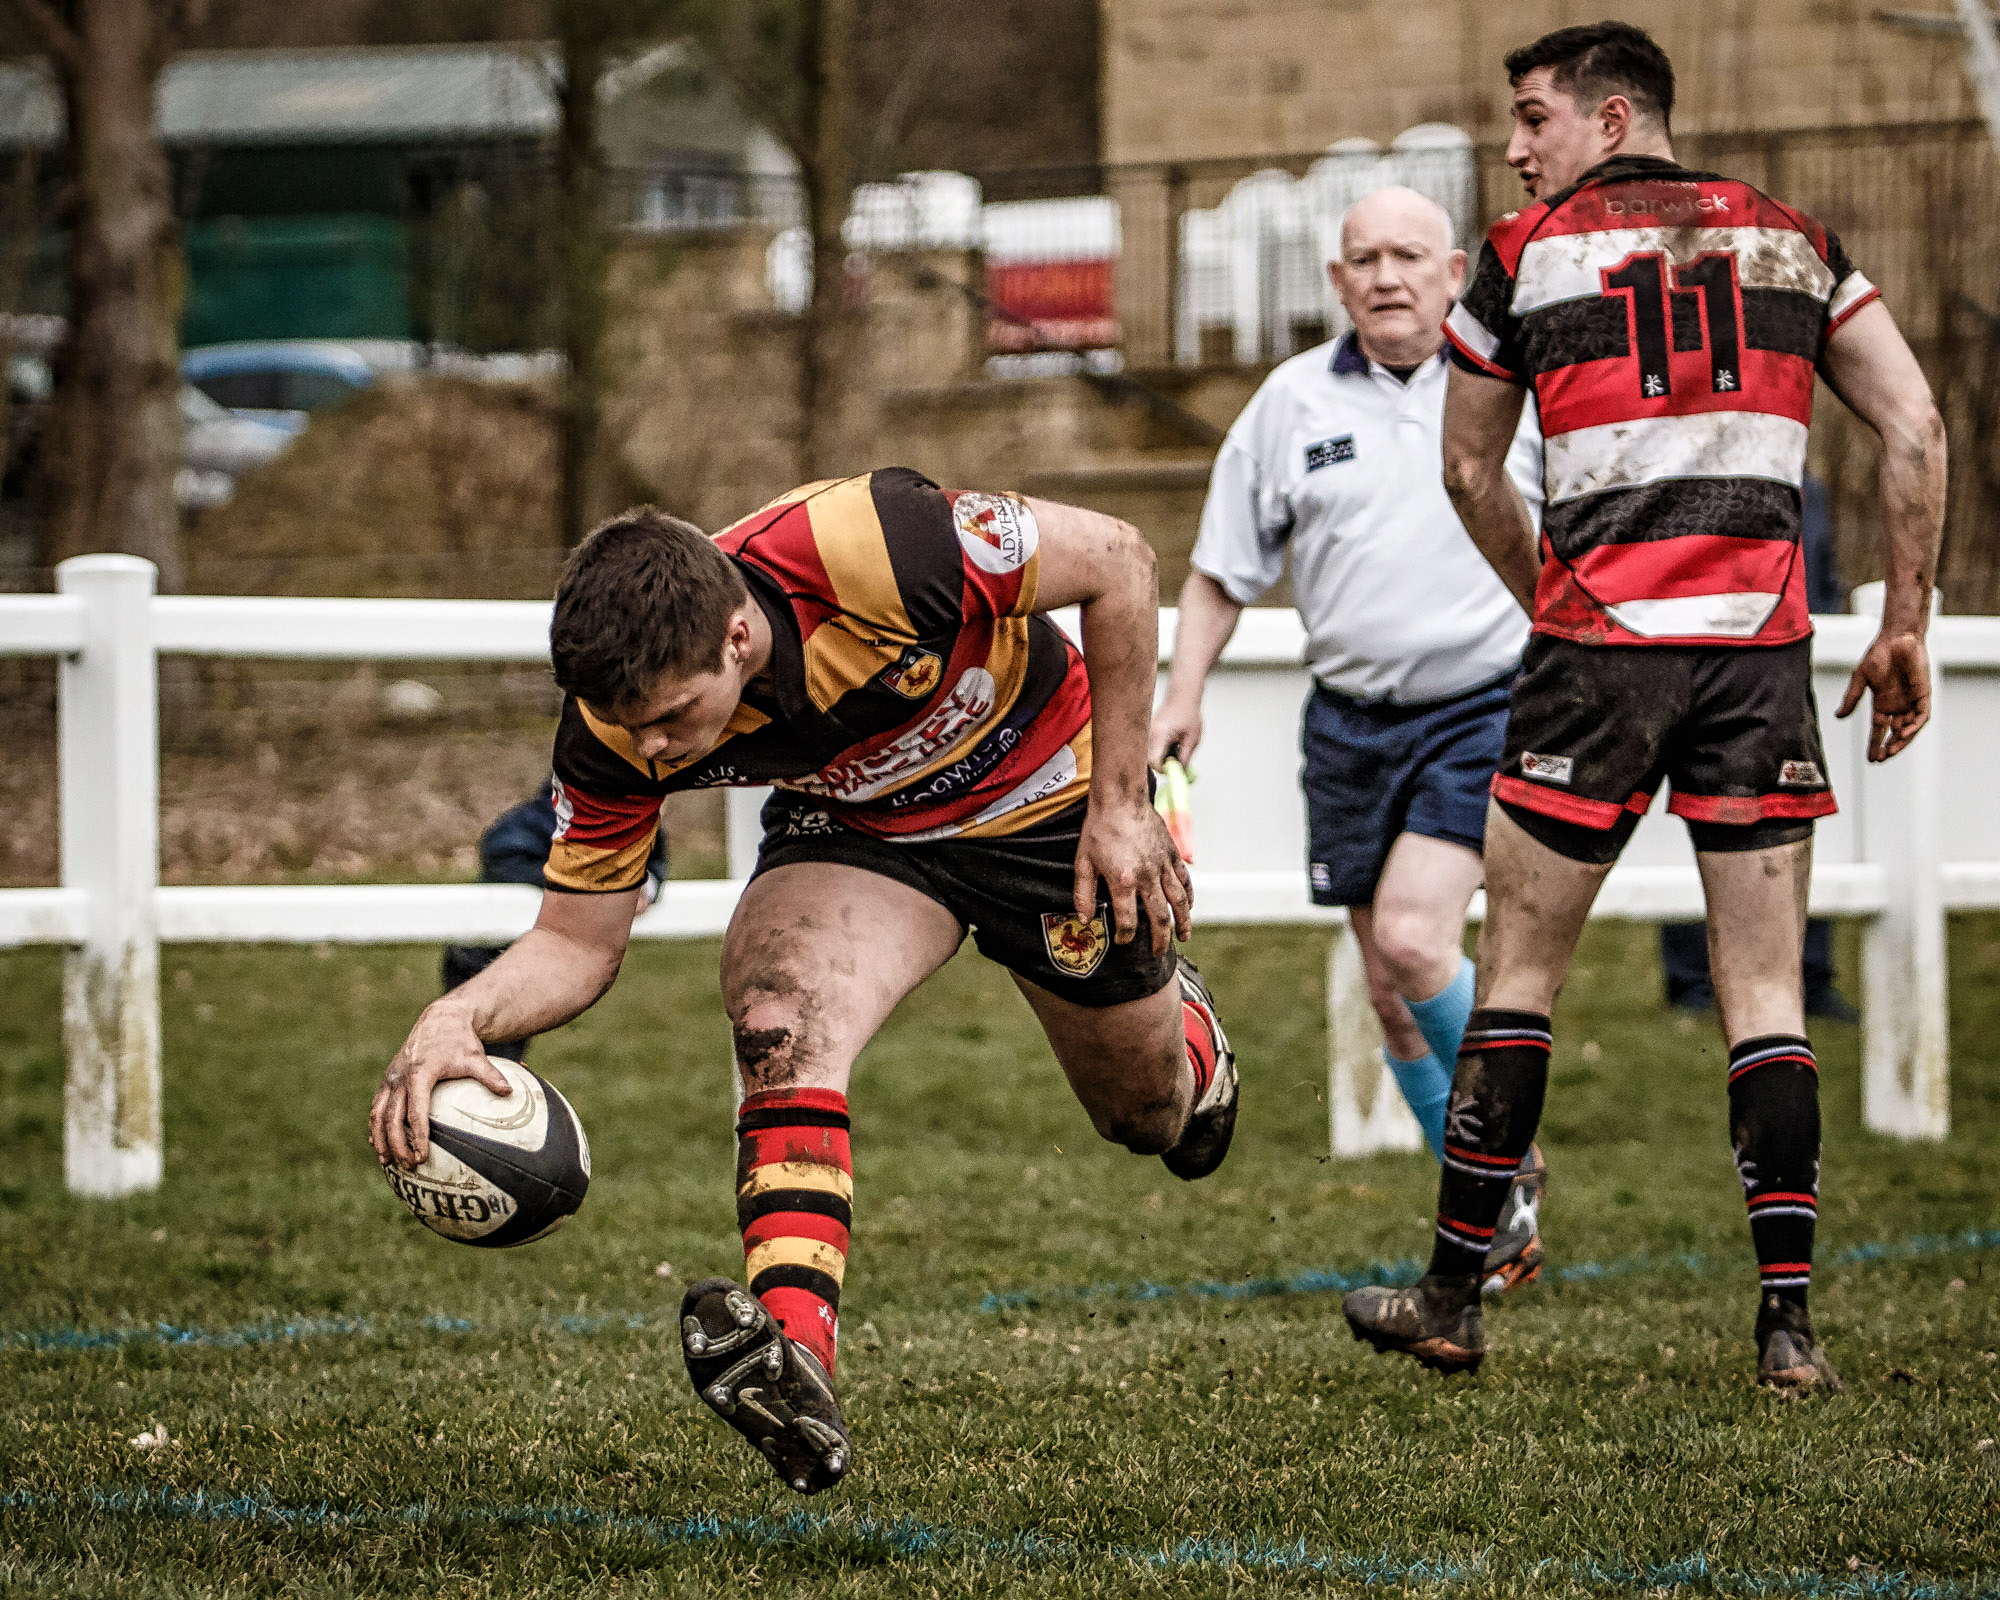 Two second half tries sealed the win for Harrogate